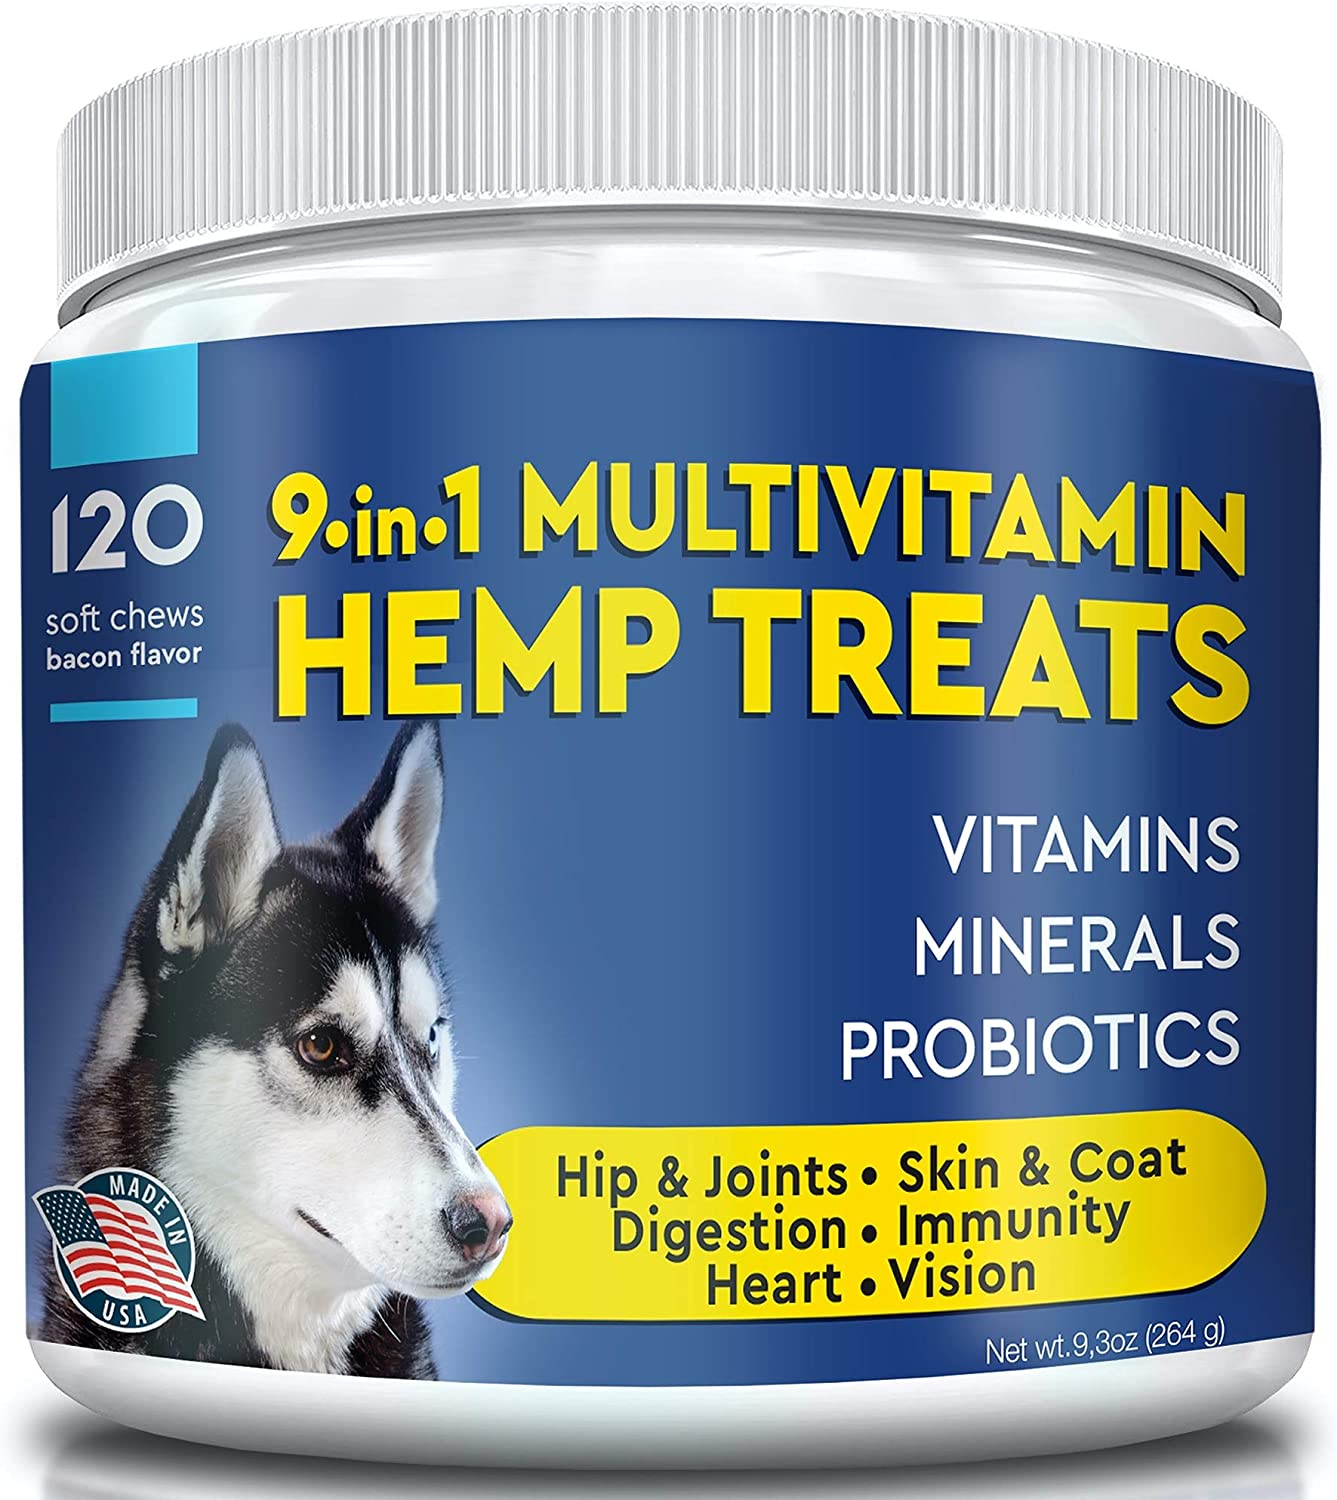 AKC Puppy Vitamins for Small Dogs